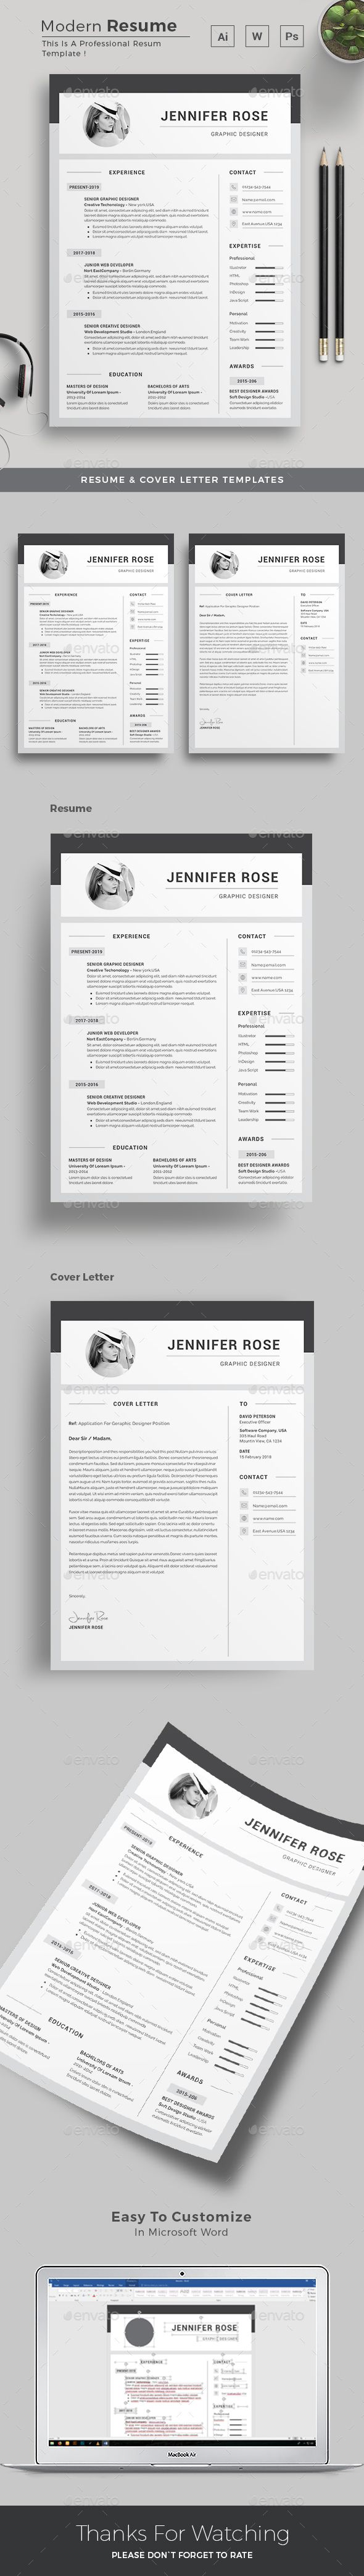 Best Resume Images On   Resume Resume Templates And